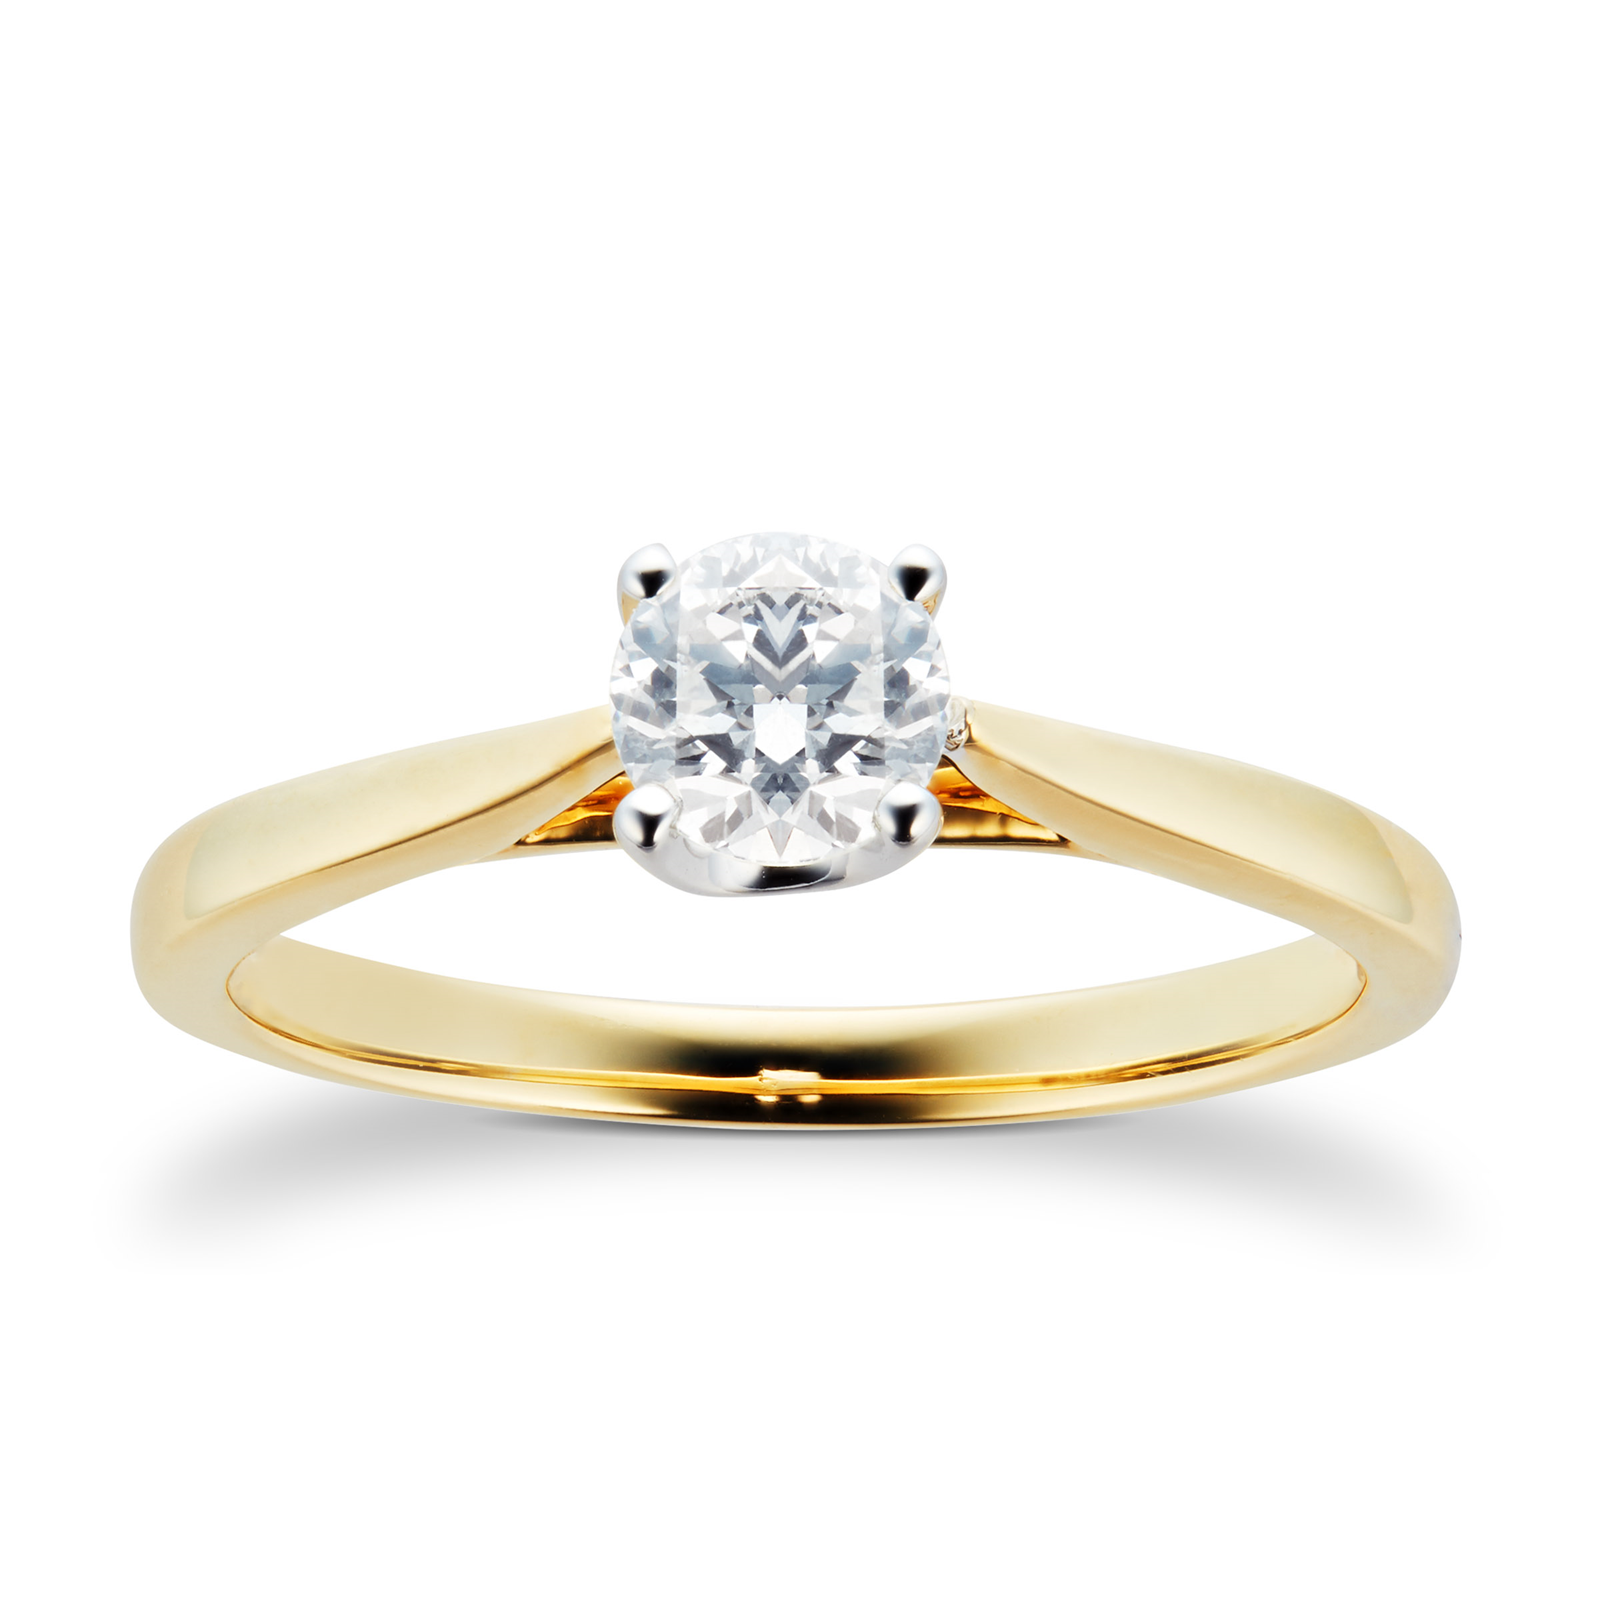 18ct Yellow Gold Brilliant Cut 0.40 Carat 88 Facet Diamond Ring - Ring Size K